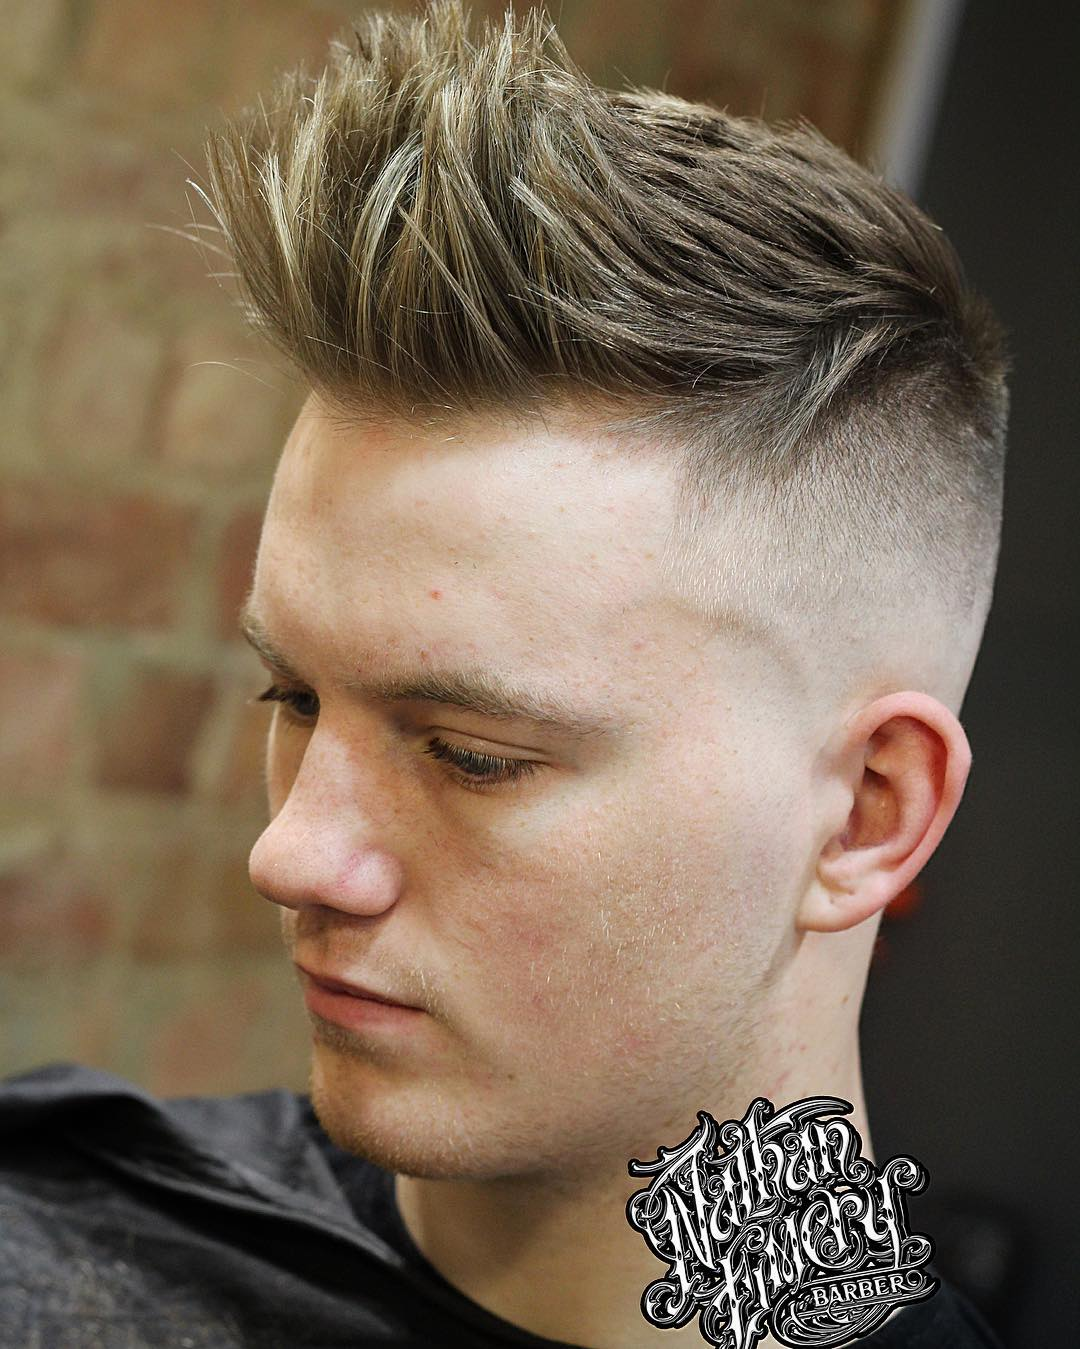 bitethythumb-Haircuts for Straight Hair Men Texture Skin Fade